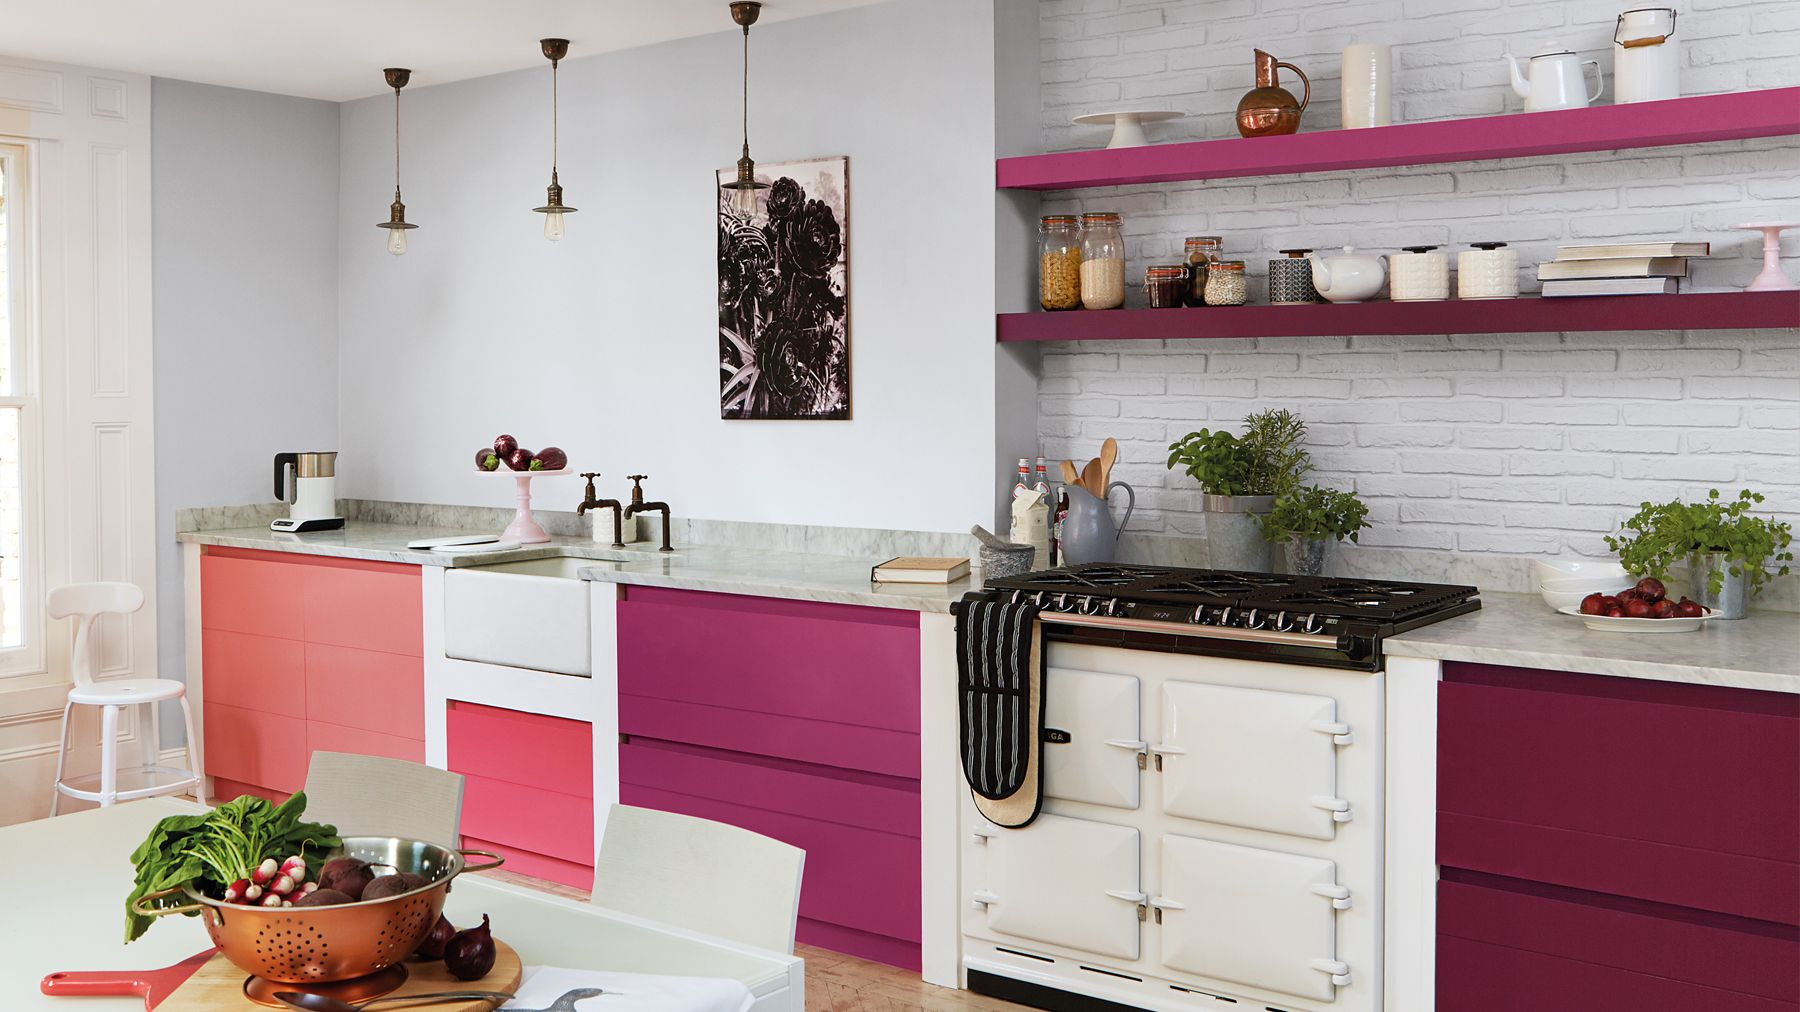 4 Quick Fixes to Update Your Kitchen 5